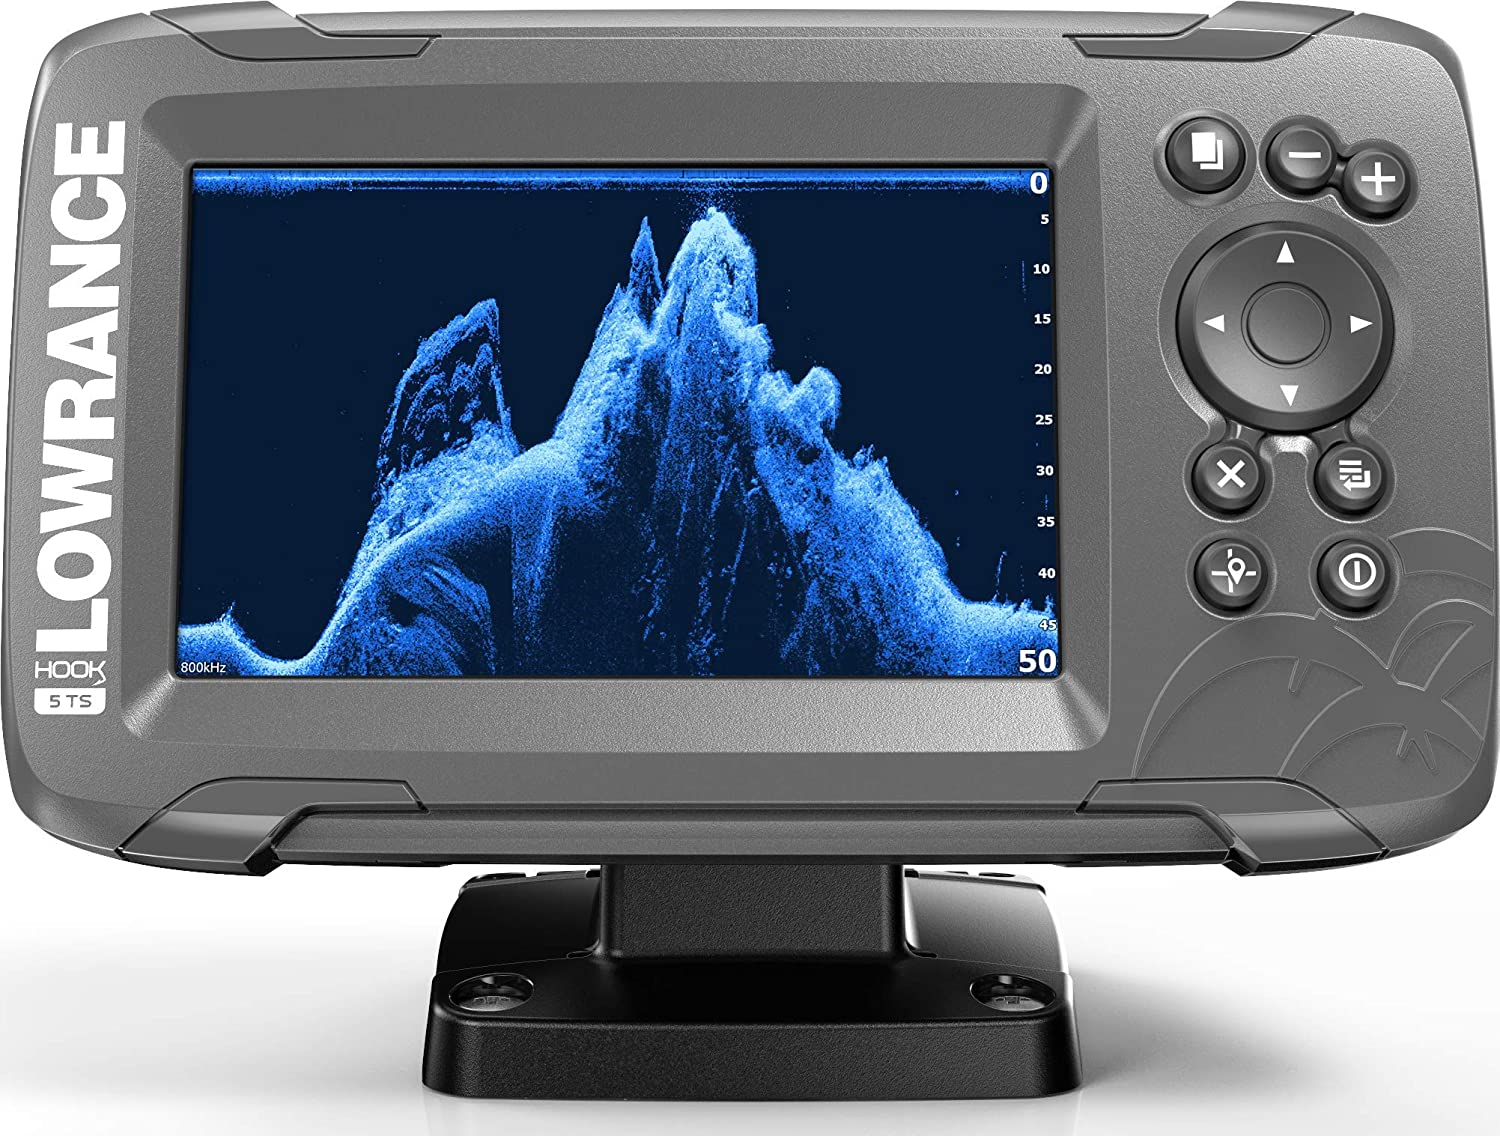 Lowrance HOOK2 5 - 5-inch Fish Finder with TripleShot Transducer and US Inland Lake Maps Installed …